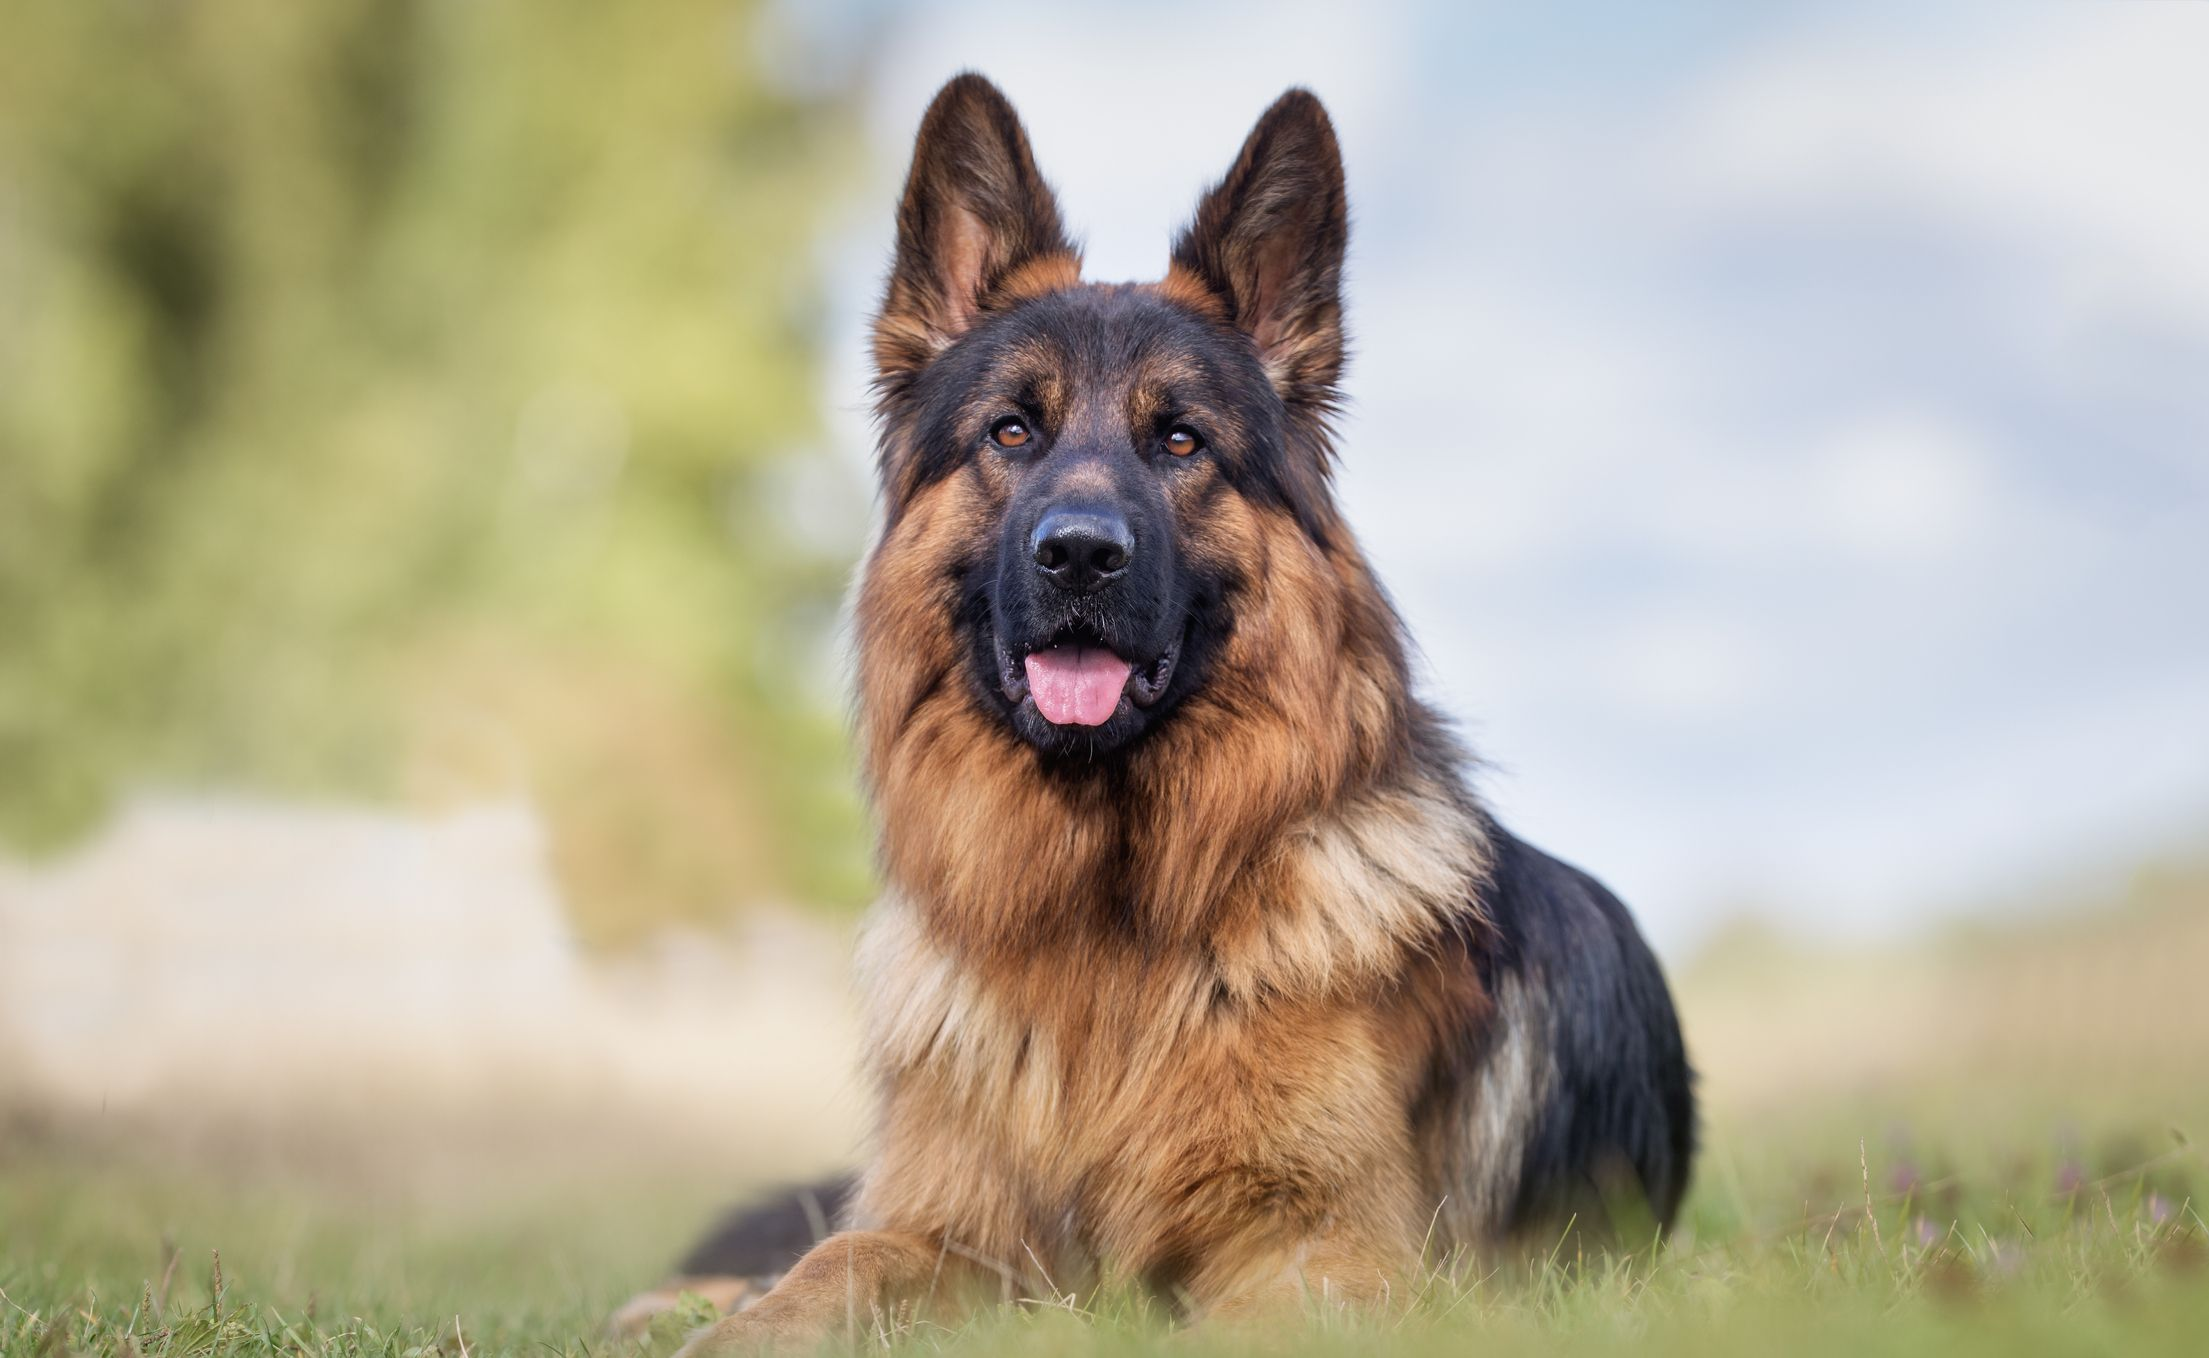 45 Best Large Dog Breeds - Top Big Dogs